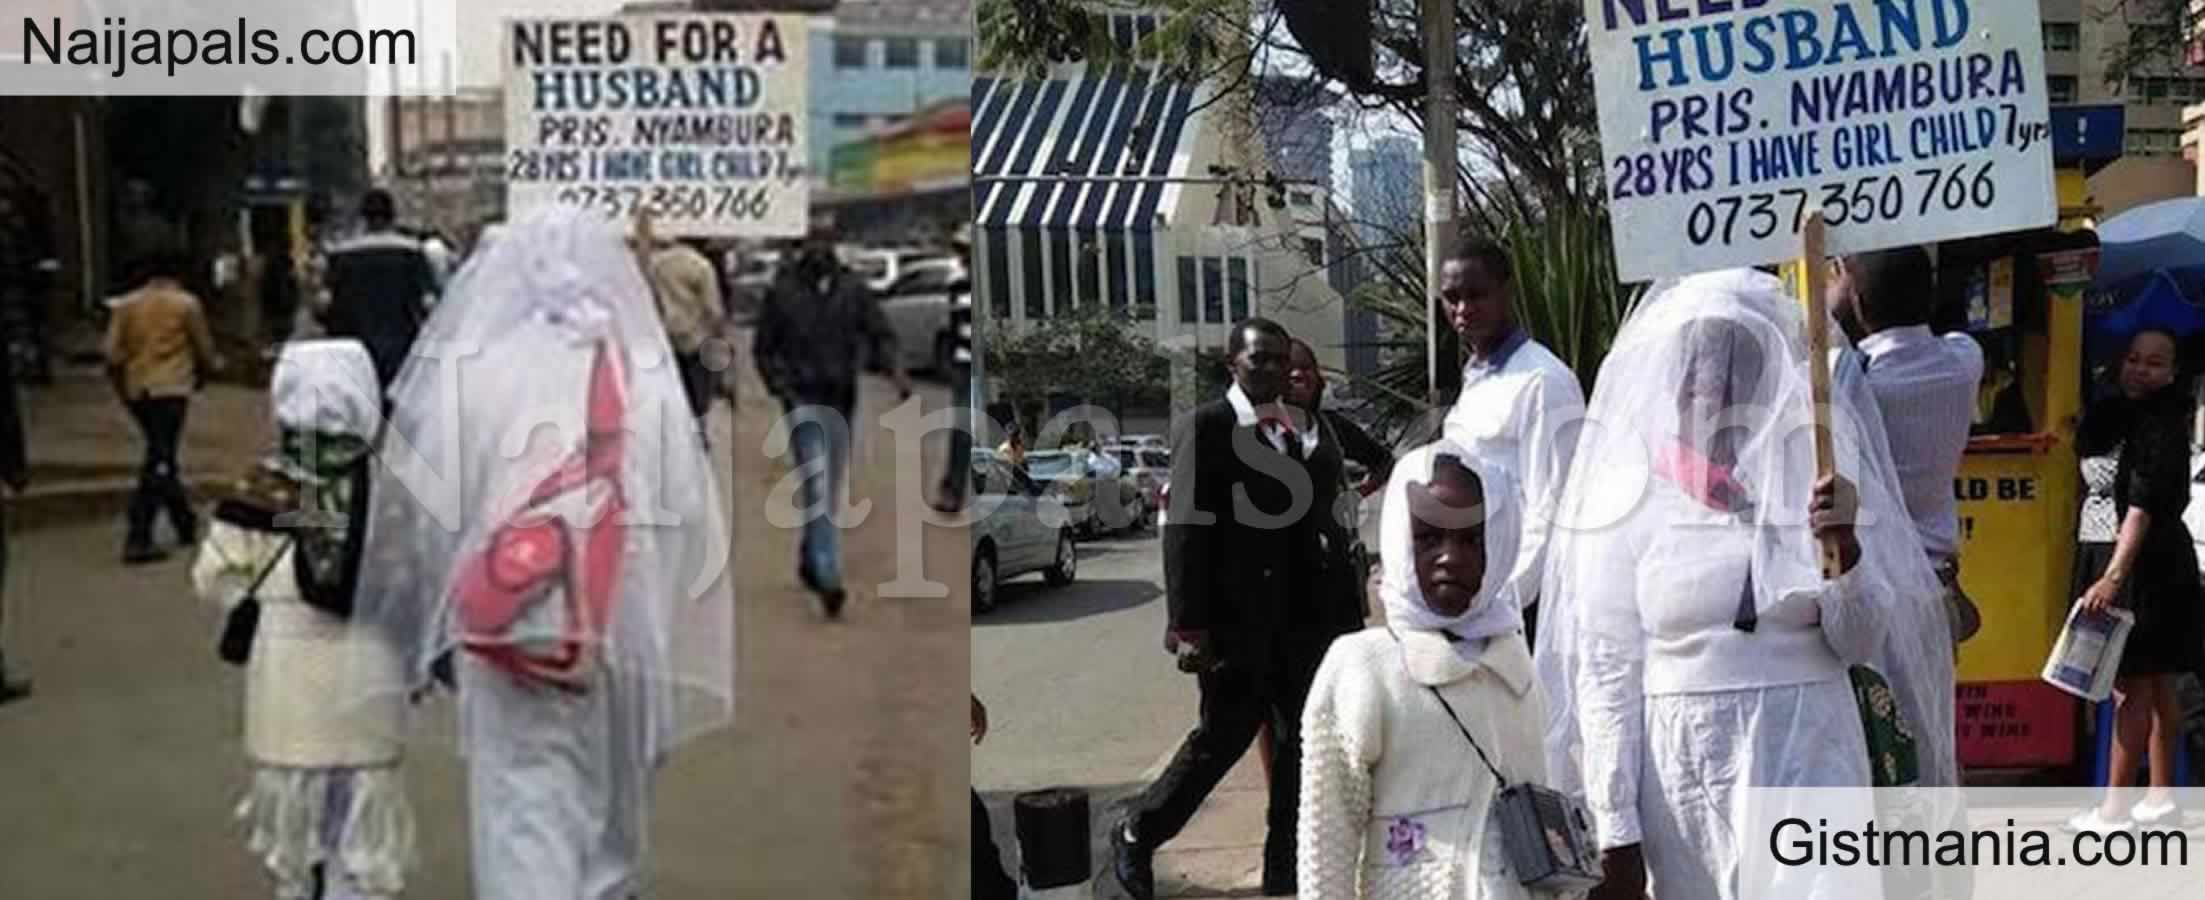 <img alt='.' class='lazyload' data-src='https://img.gistmania.com/emot/video.gif' /> <b>Pretty Lady Wearing Wedding Gown Storms Streets With Placard in Search Of A Husband</b>